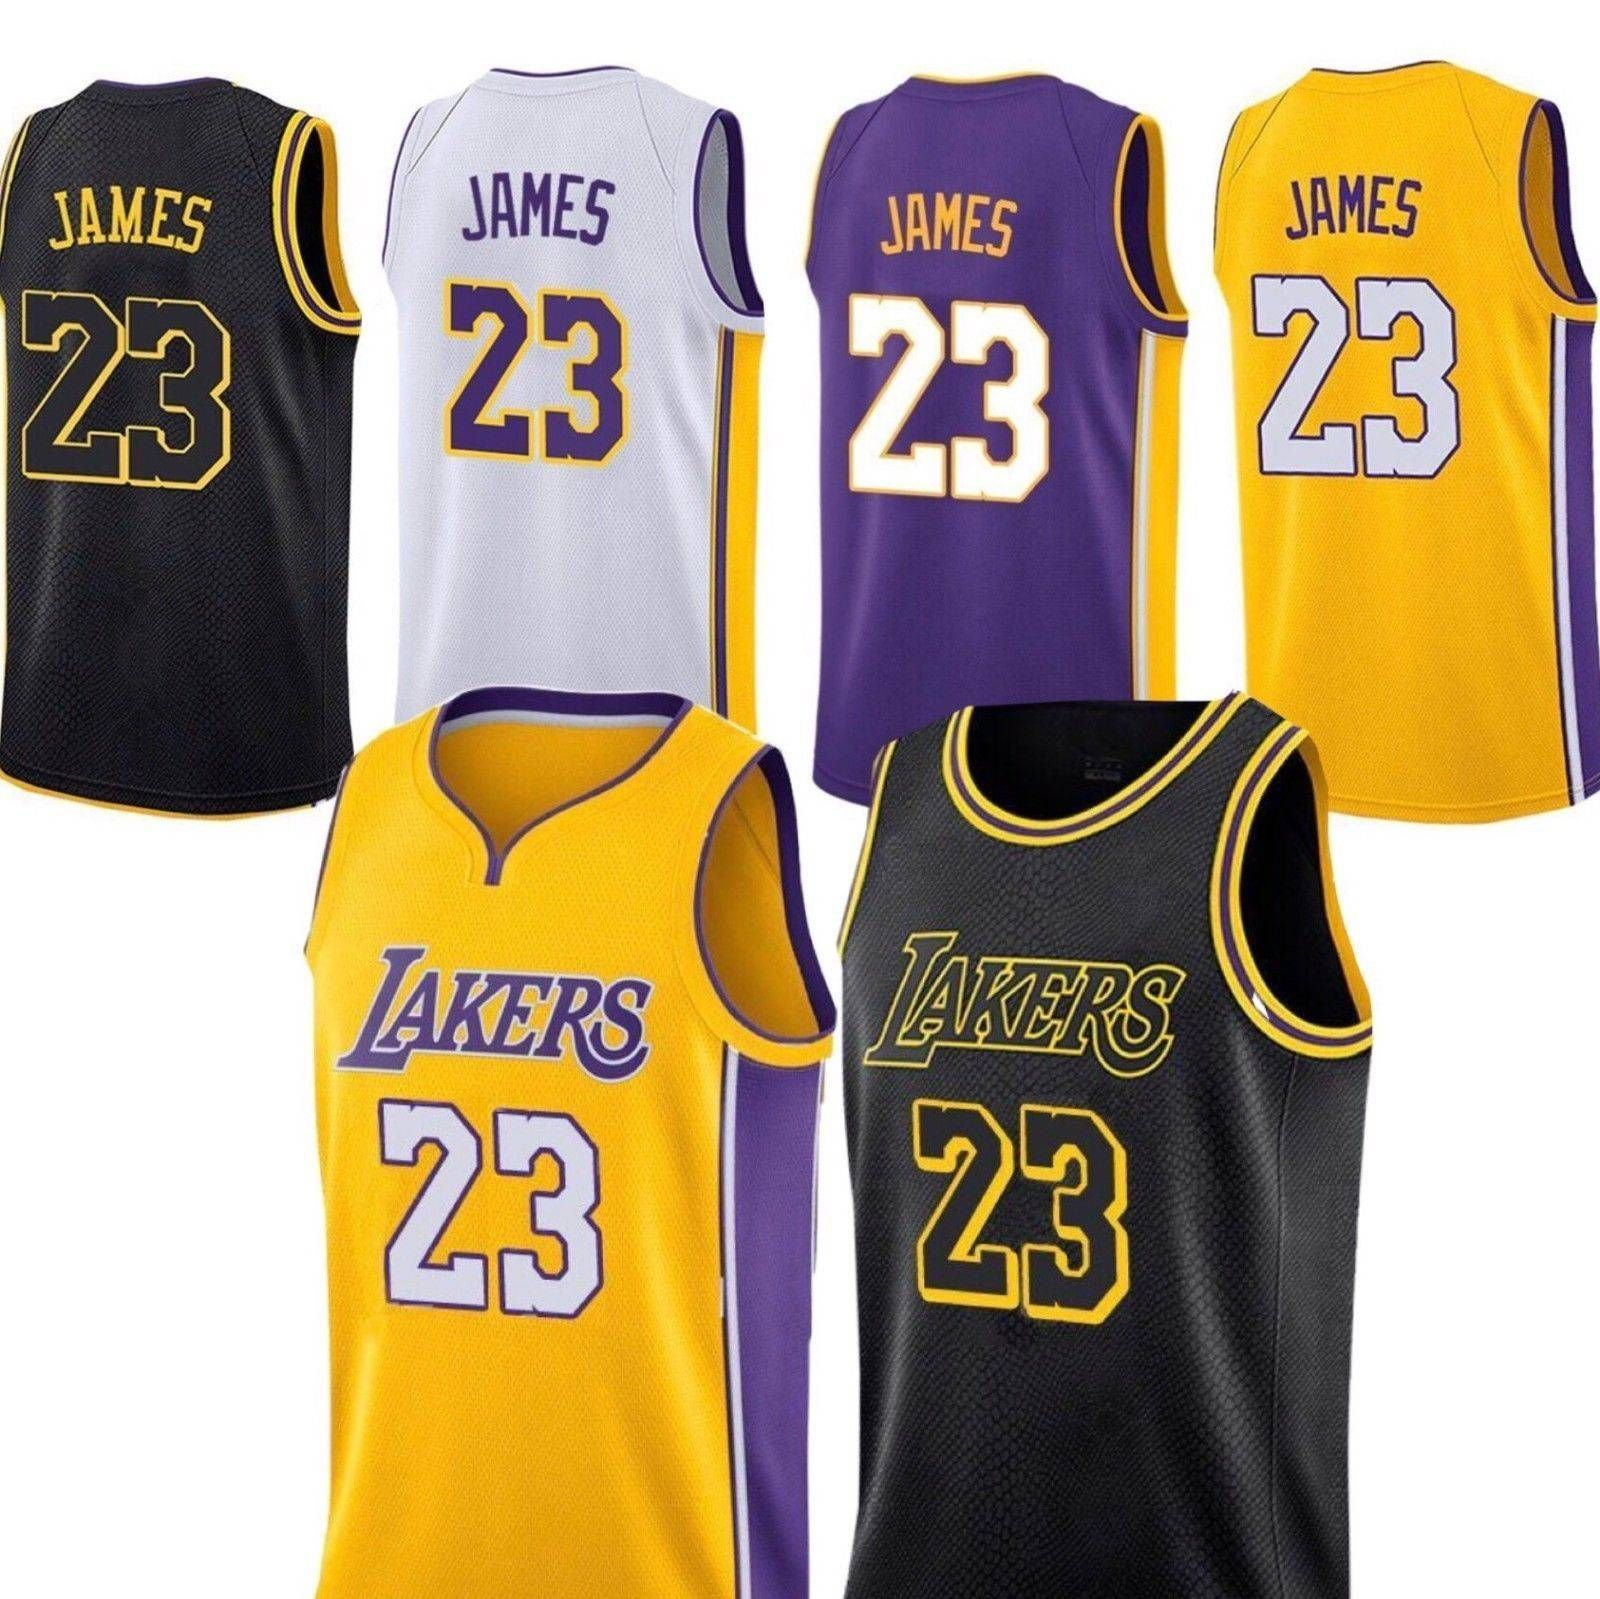 New Los Angeles Lakers Lebron James Jersey Basketball Clothes Lebron James Lakers Lakers Outfit